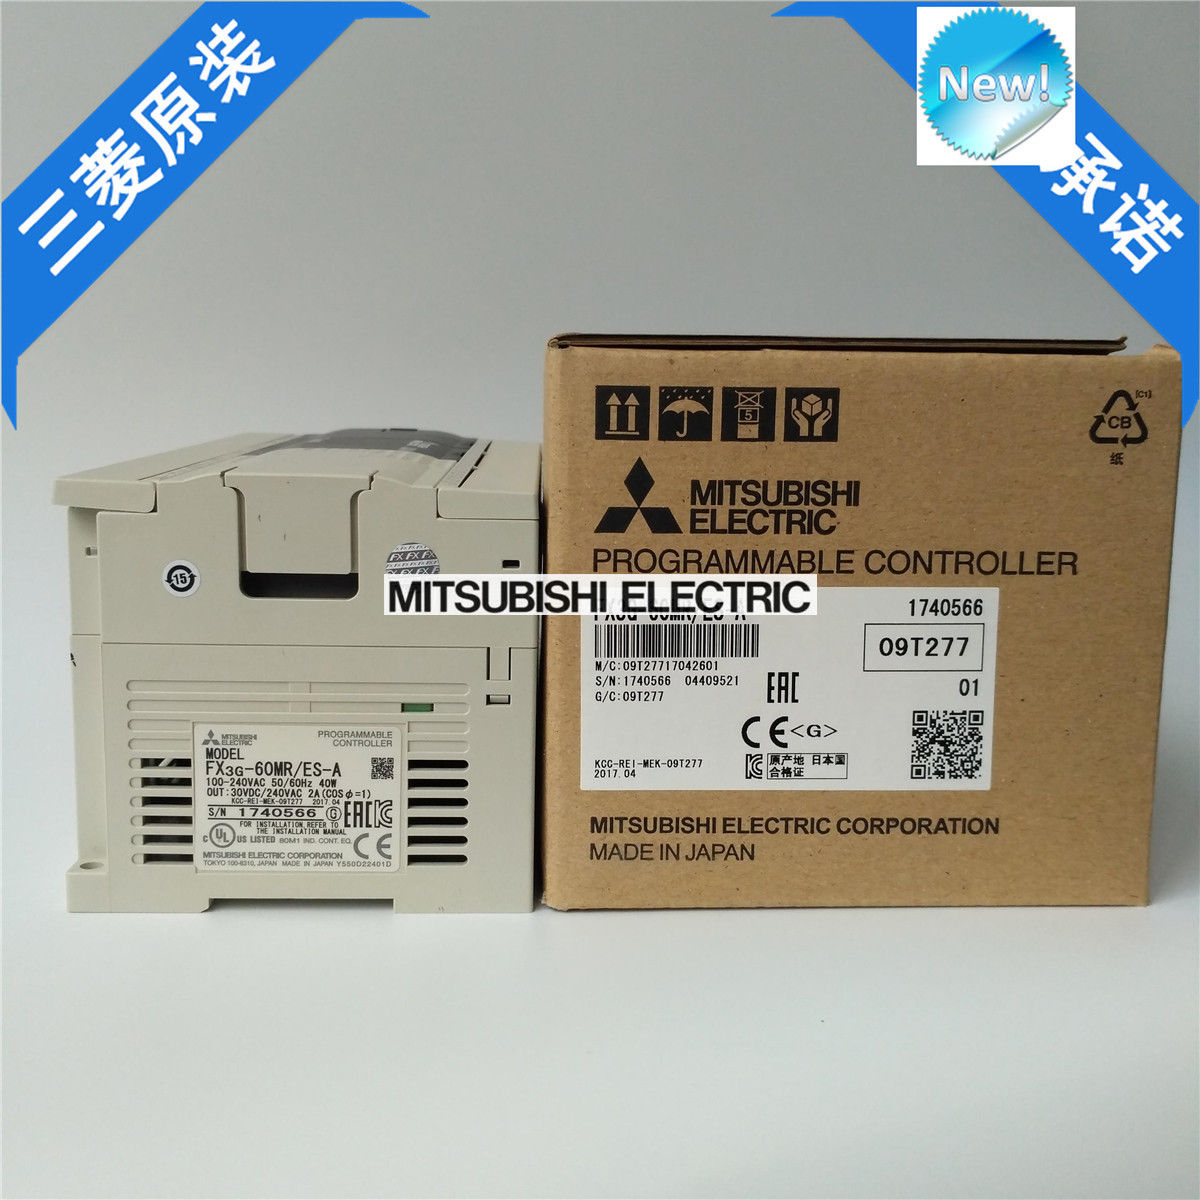 New Mitsubishi PLC FX3G-60MR/ES-A In Box FX3G60MRESA